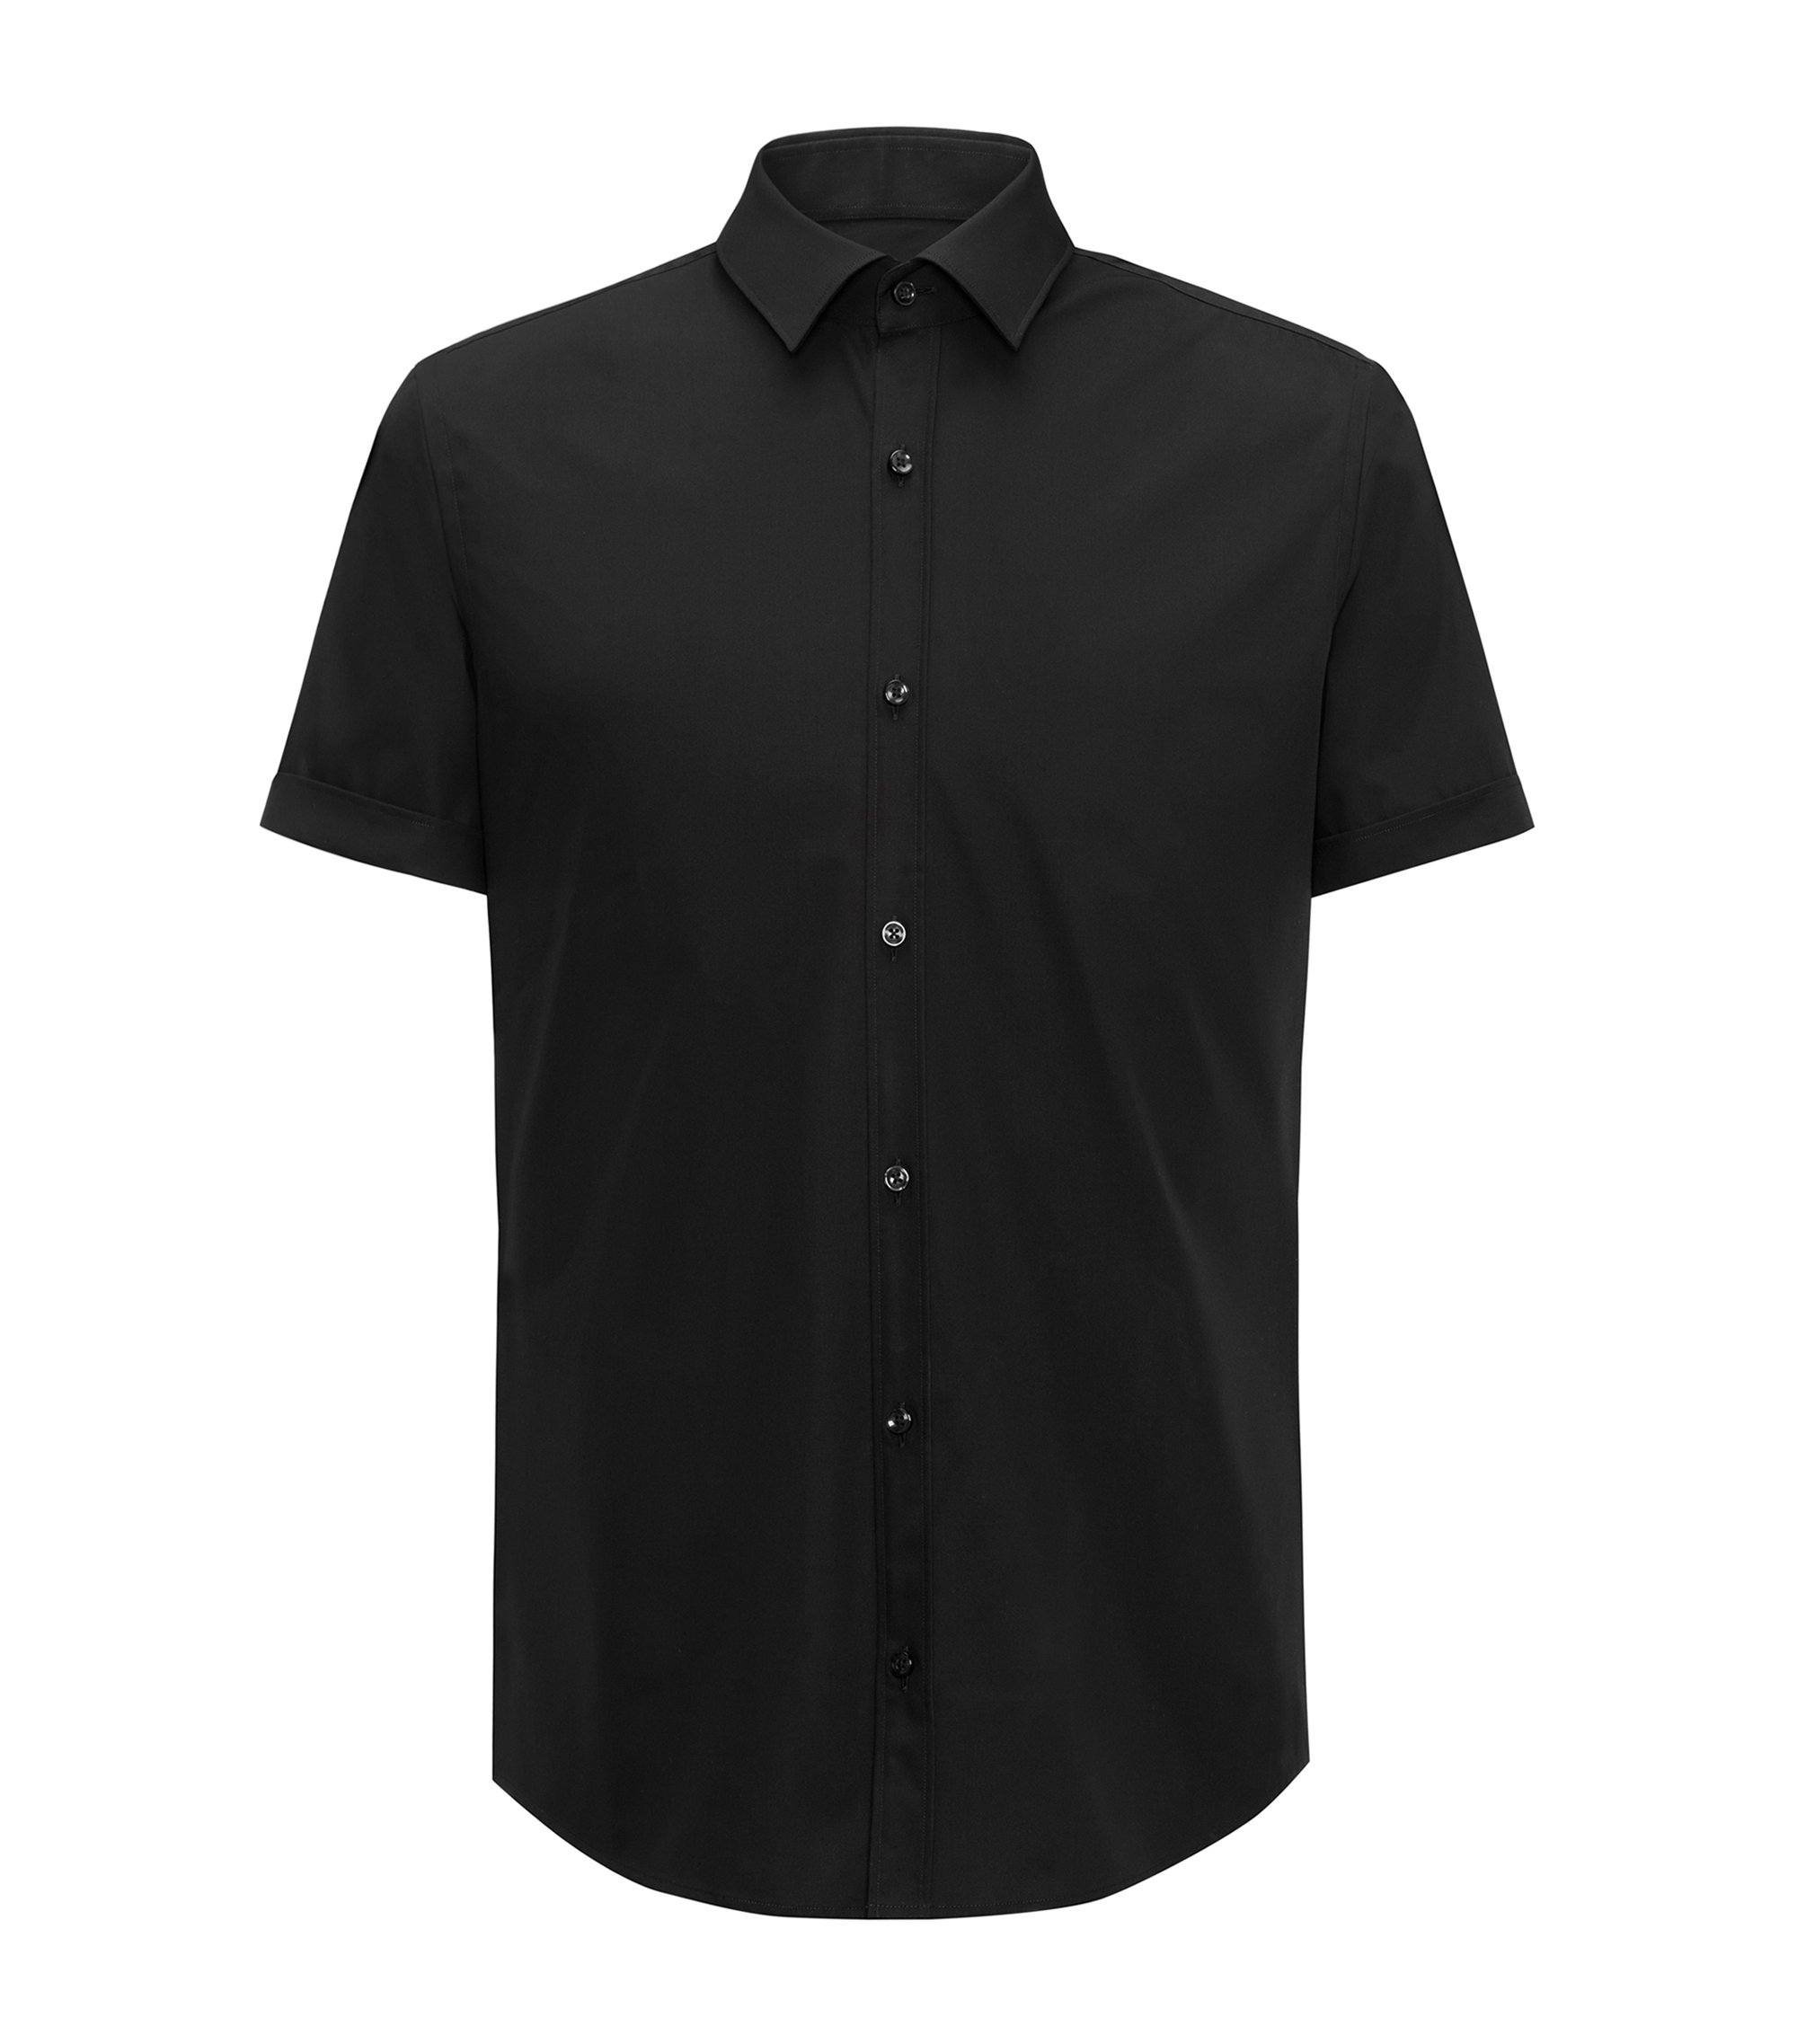 Slim-fit short-sleeved shirt in cotton poplin, Black